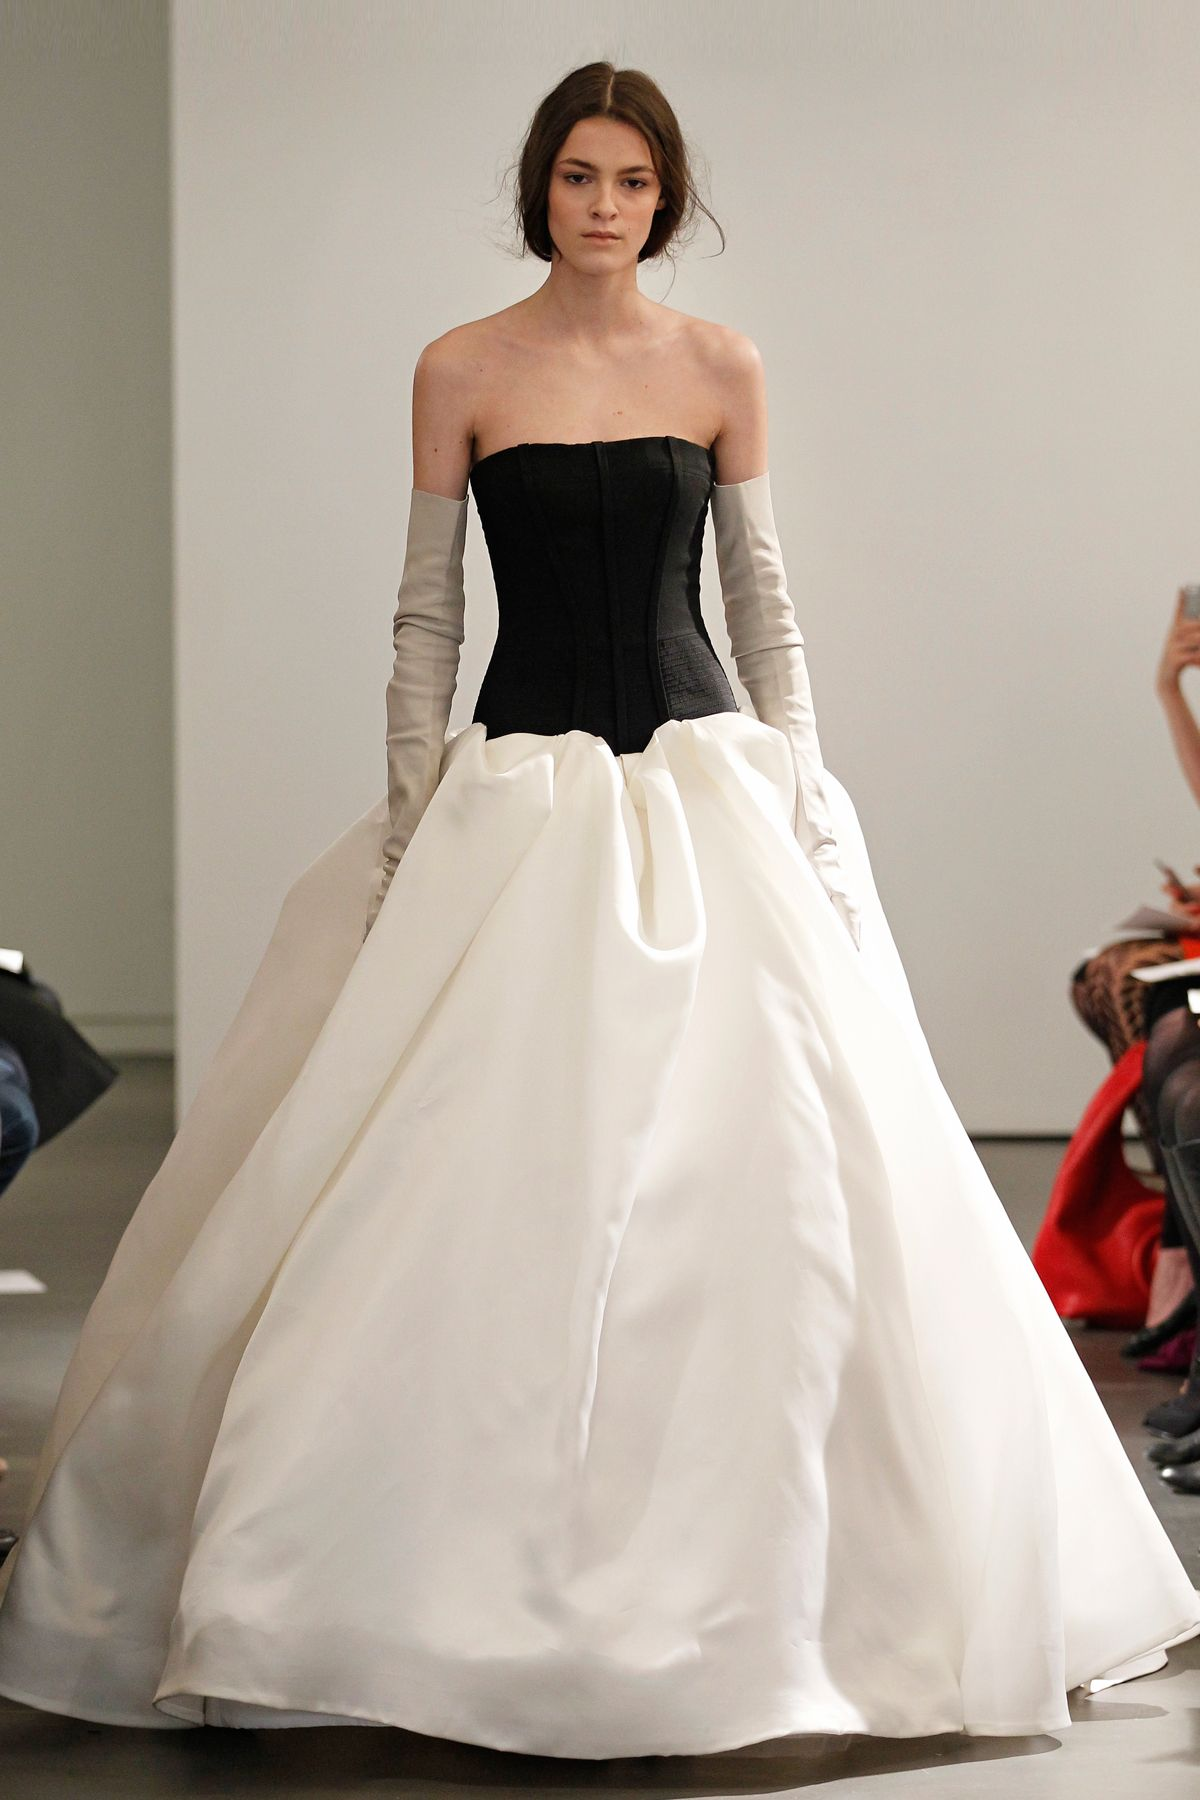 top dresses 2014 this vera **** wedding dress has a black corset